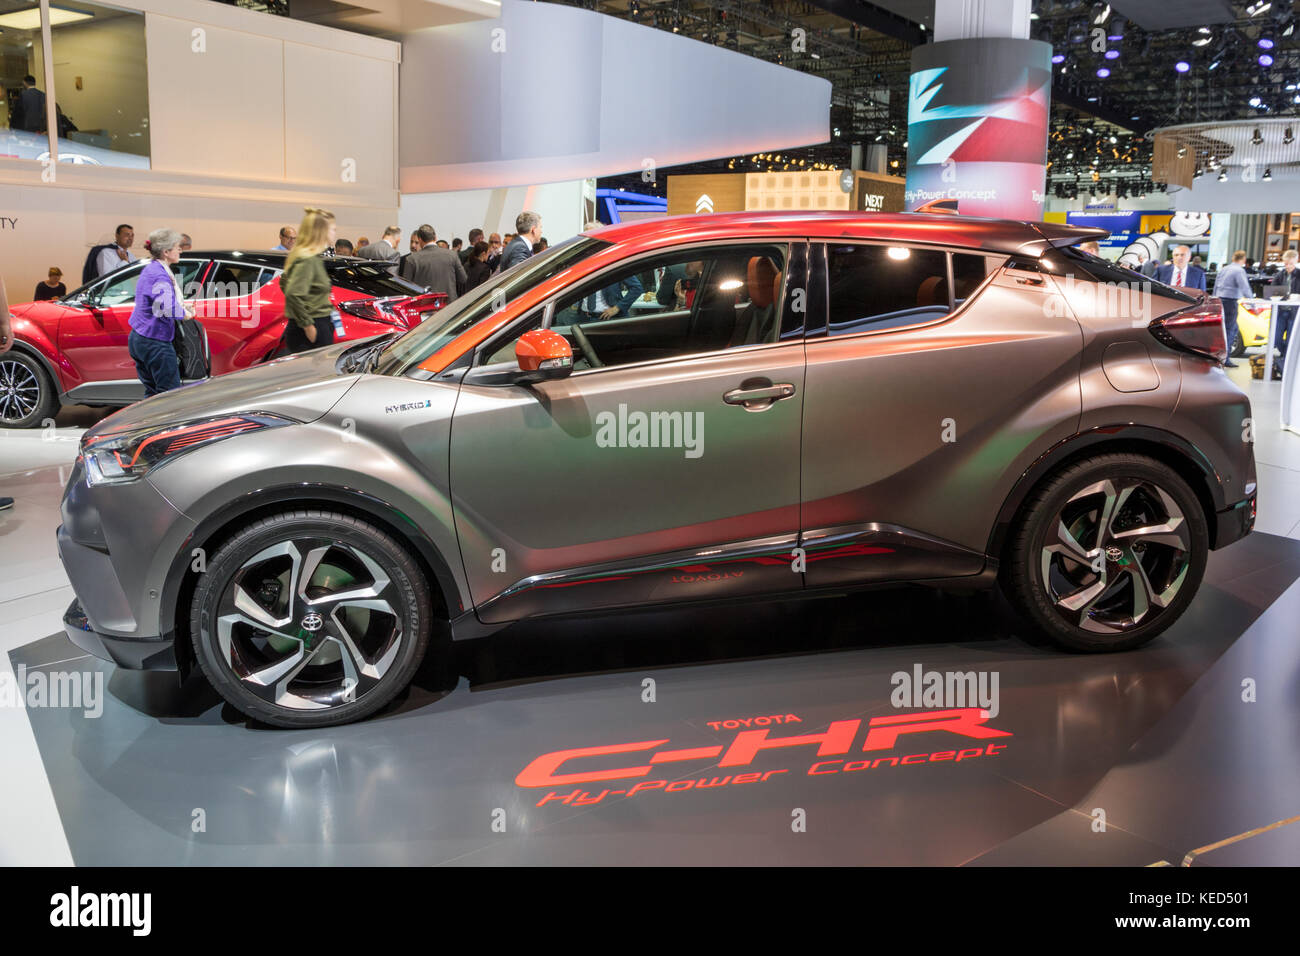 toyota chr stock photos toyota chr stock images alamy. Black Bedroom Furniture Sets. Home Design Ideas